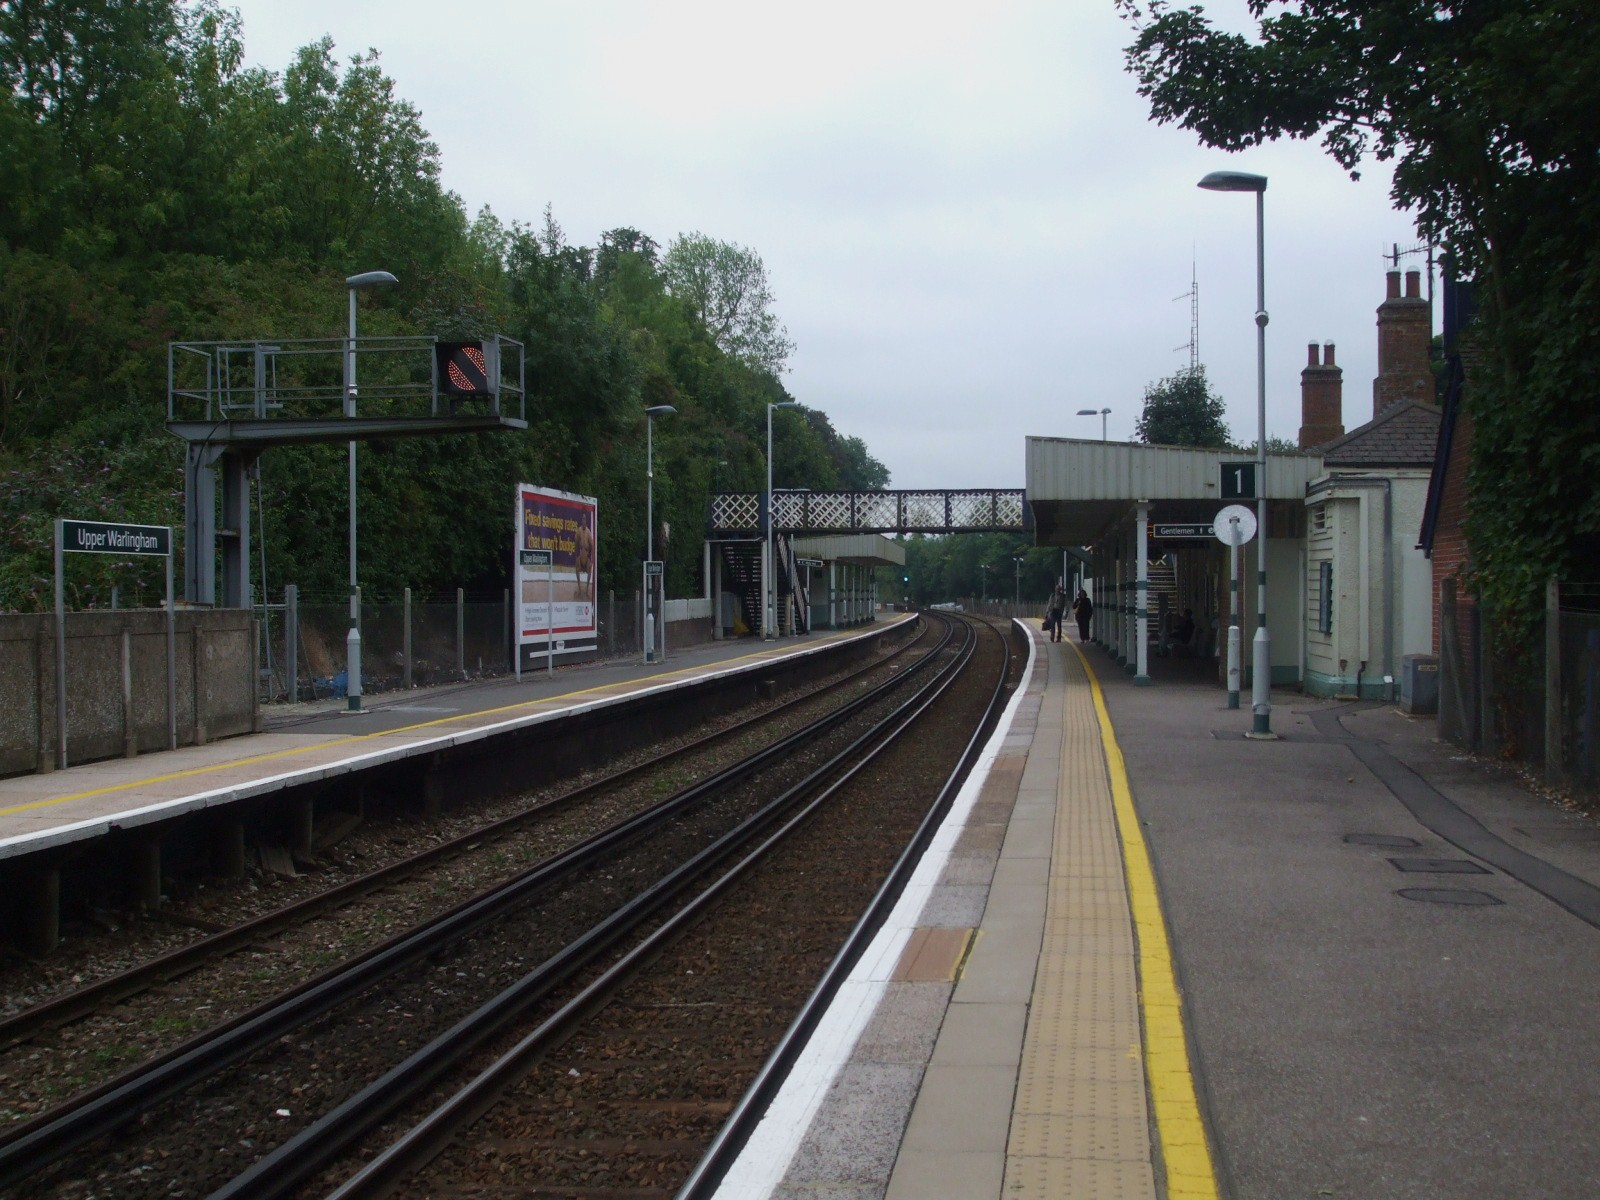 Upper Warlingham Train Station